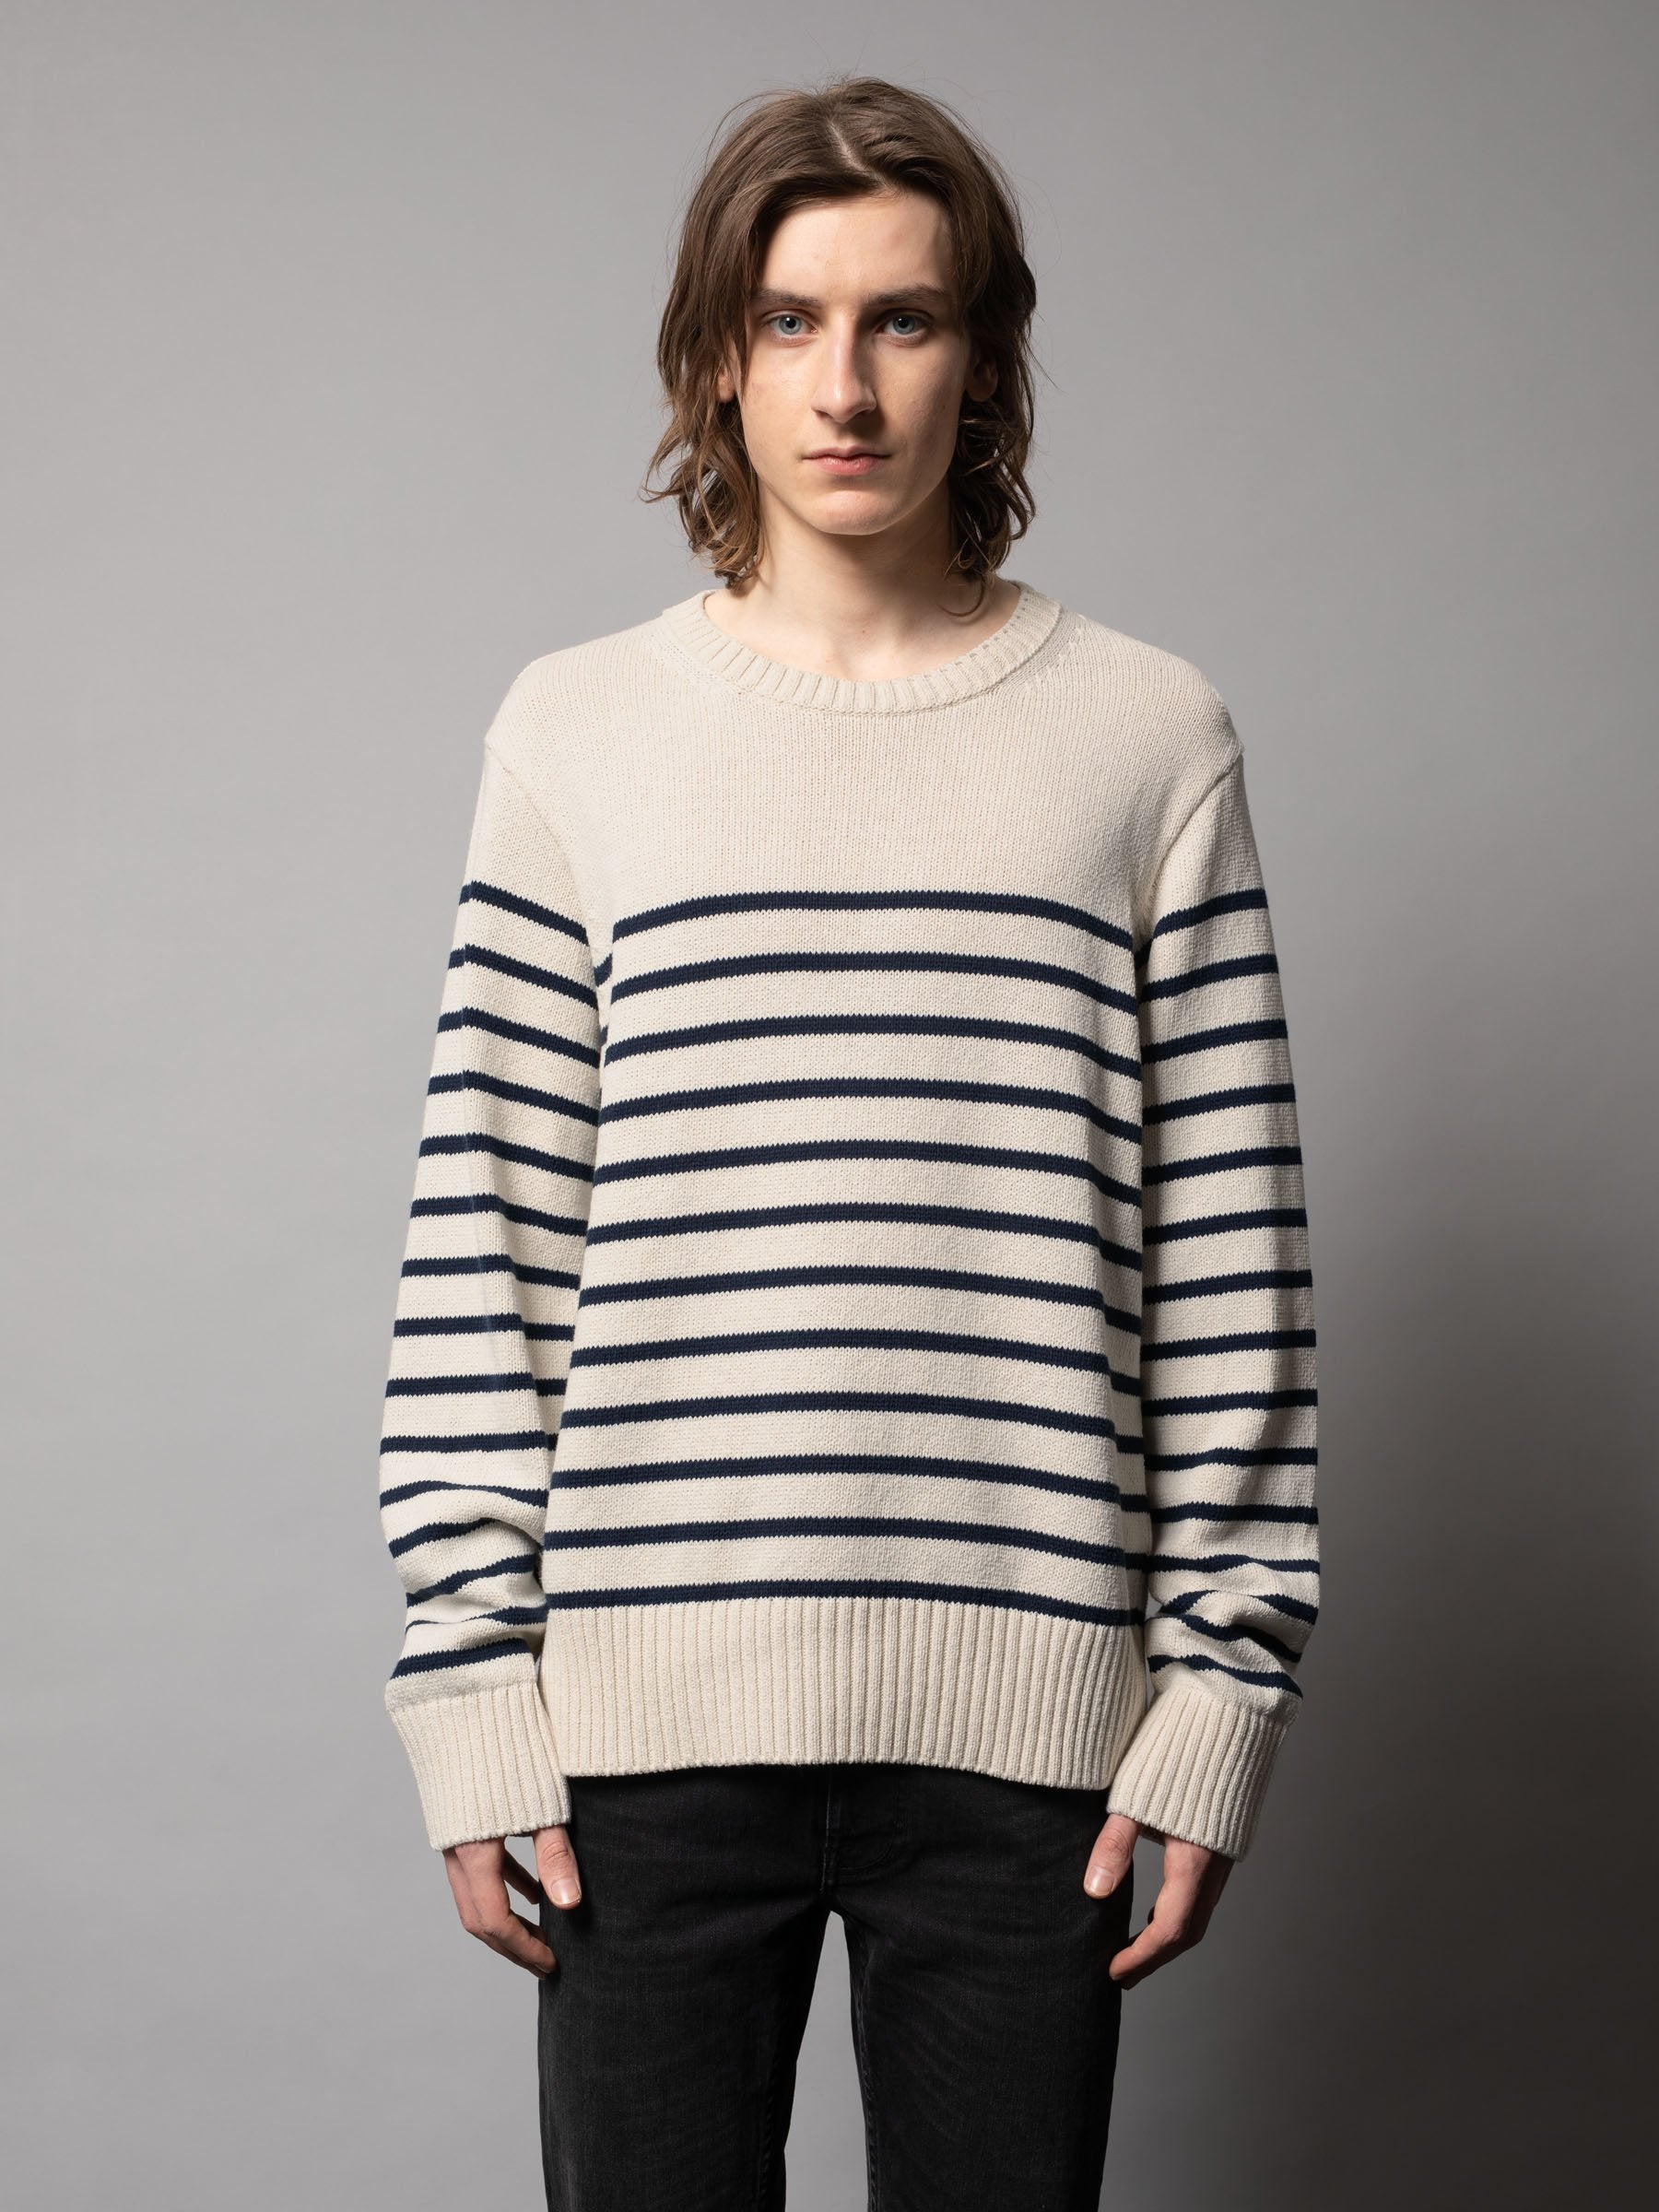 Nudie - Hampus Recycled Sweater - Offwhite/Navy Stripe